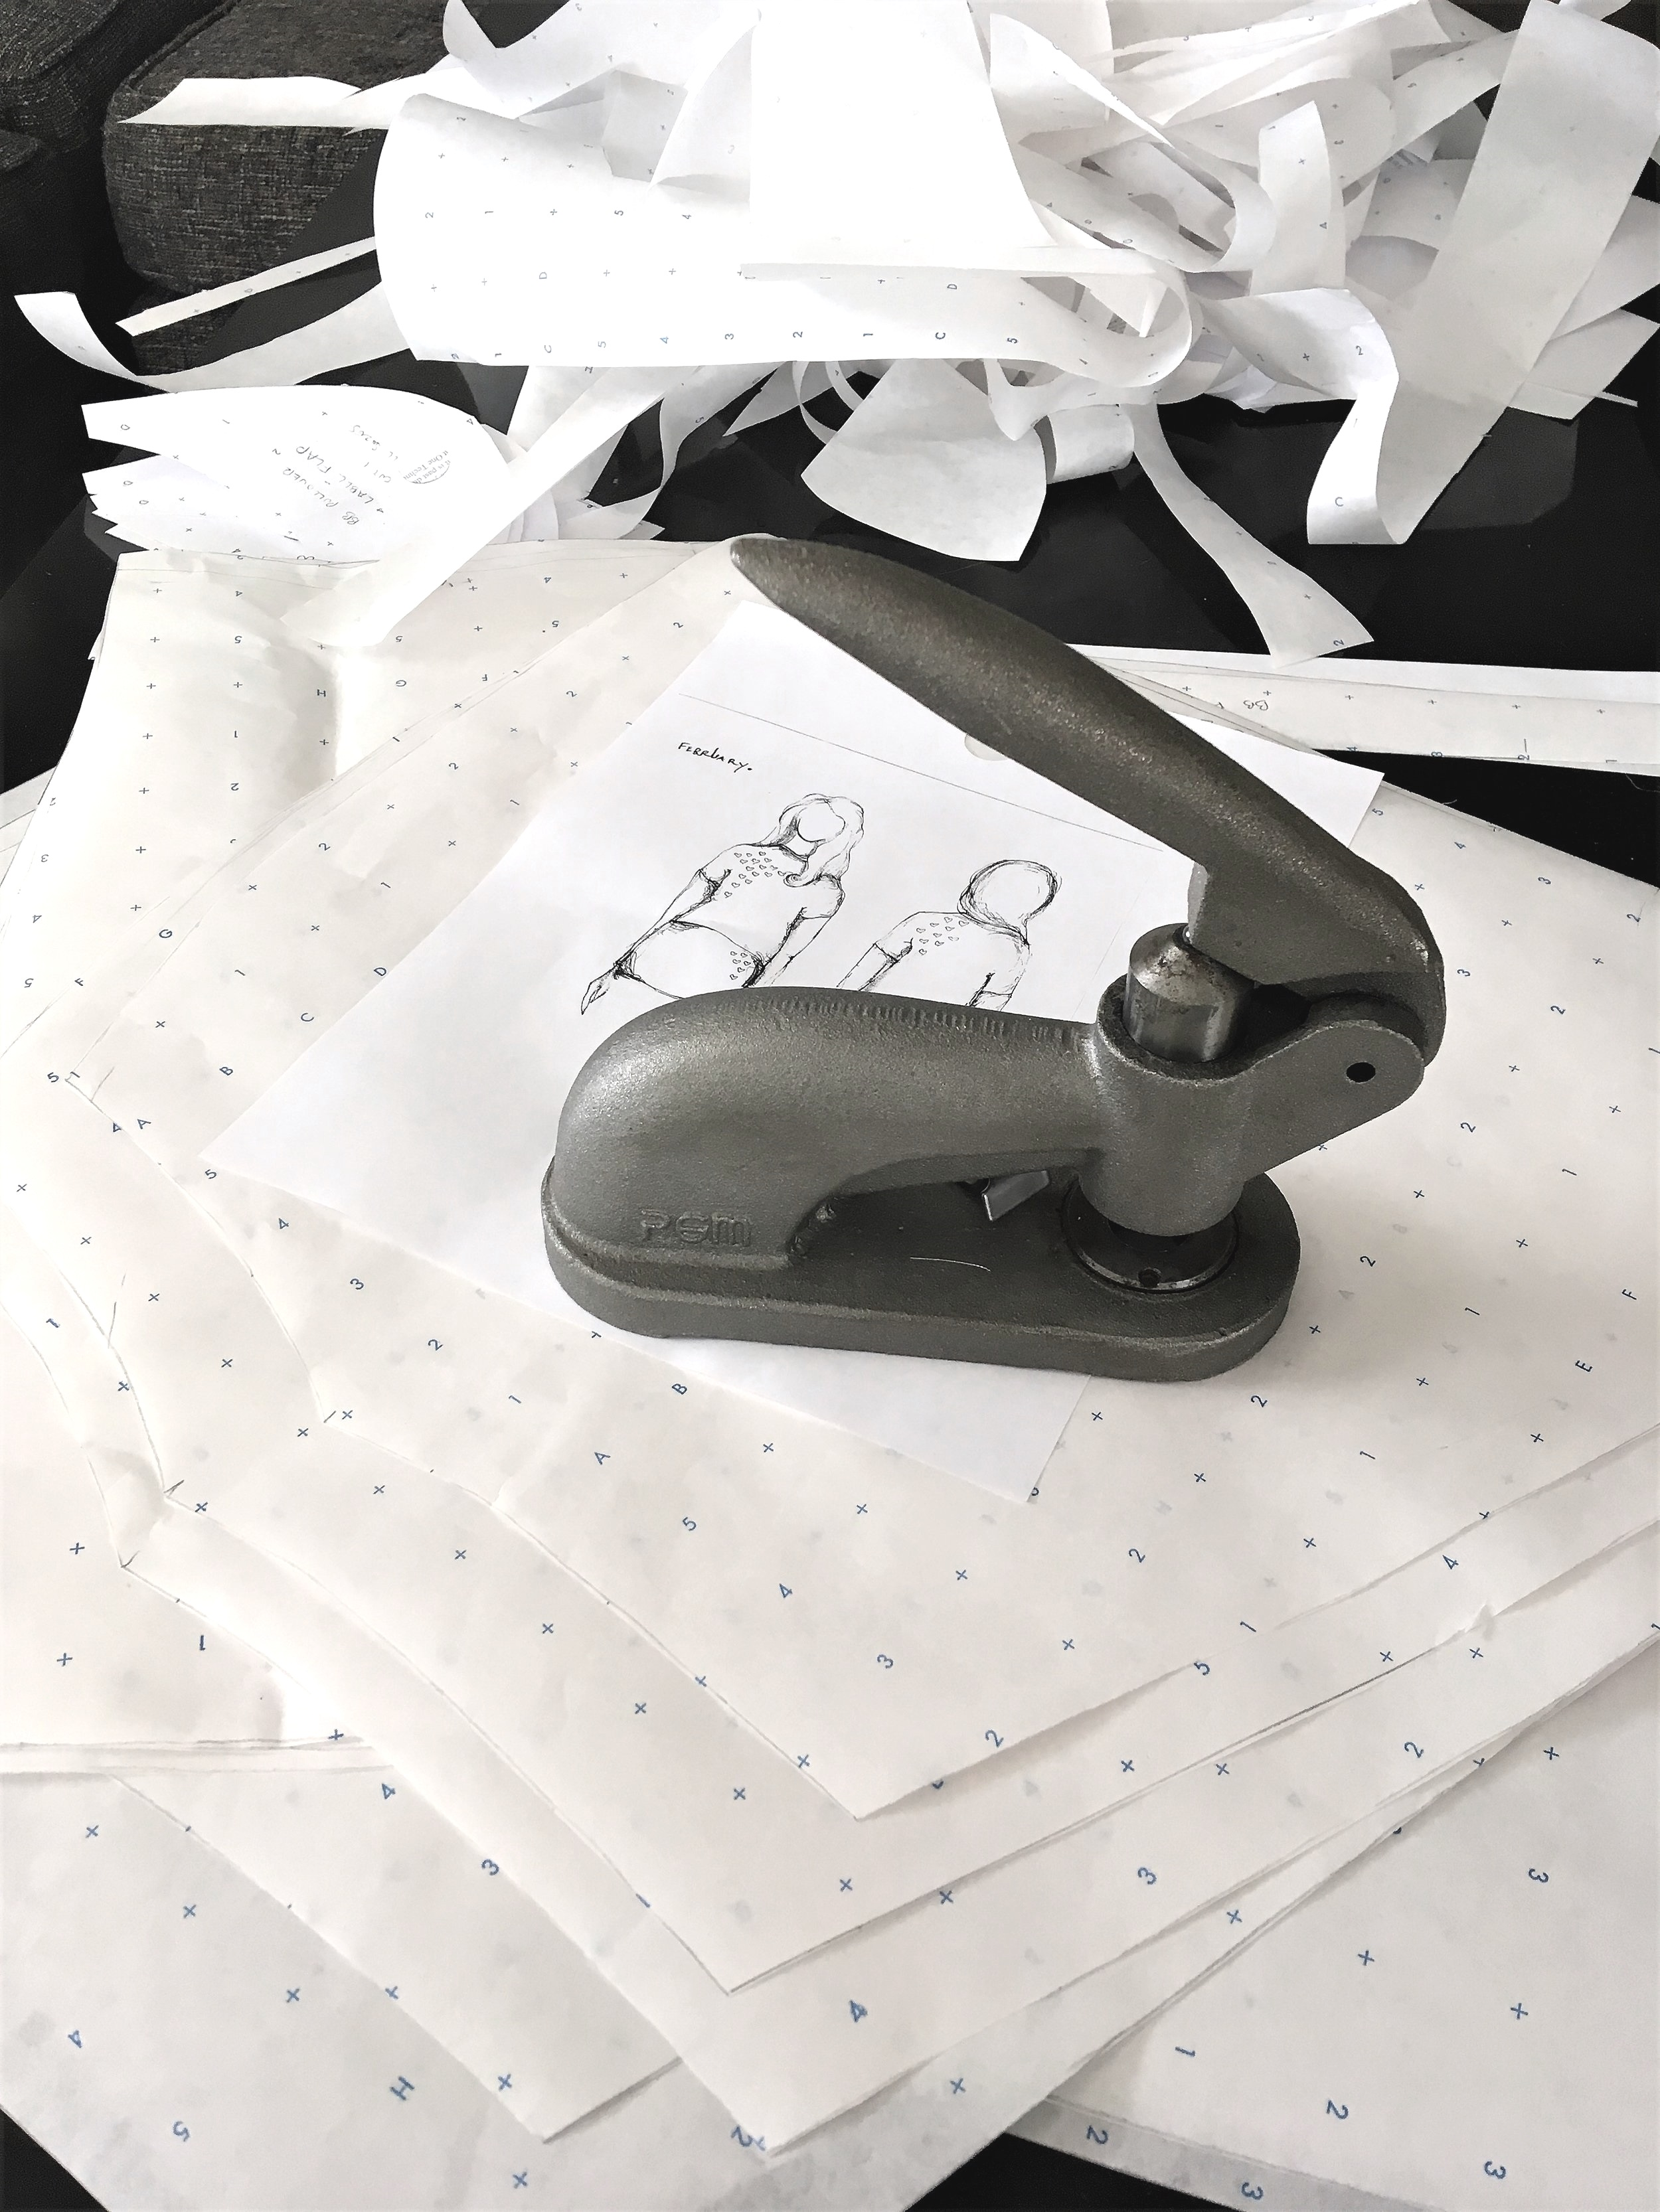 Drafting the paper patterns to use as a 'blueprint' for cutting.